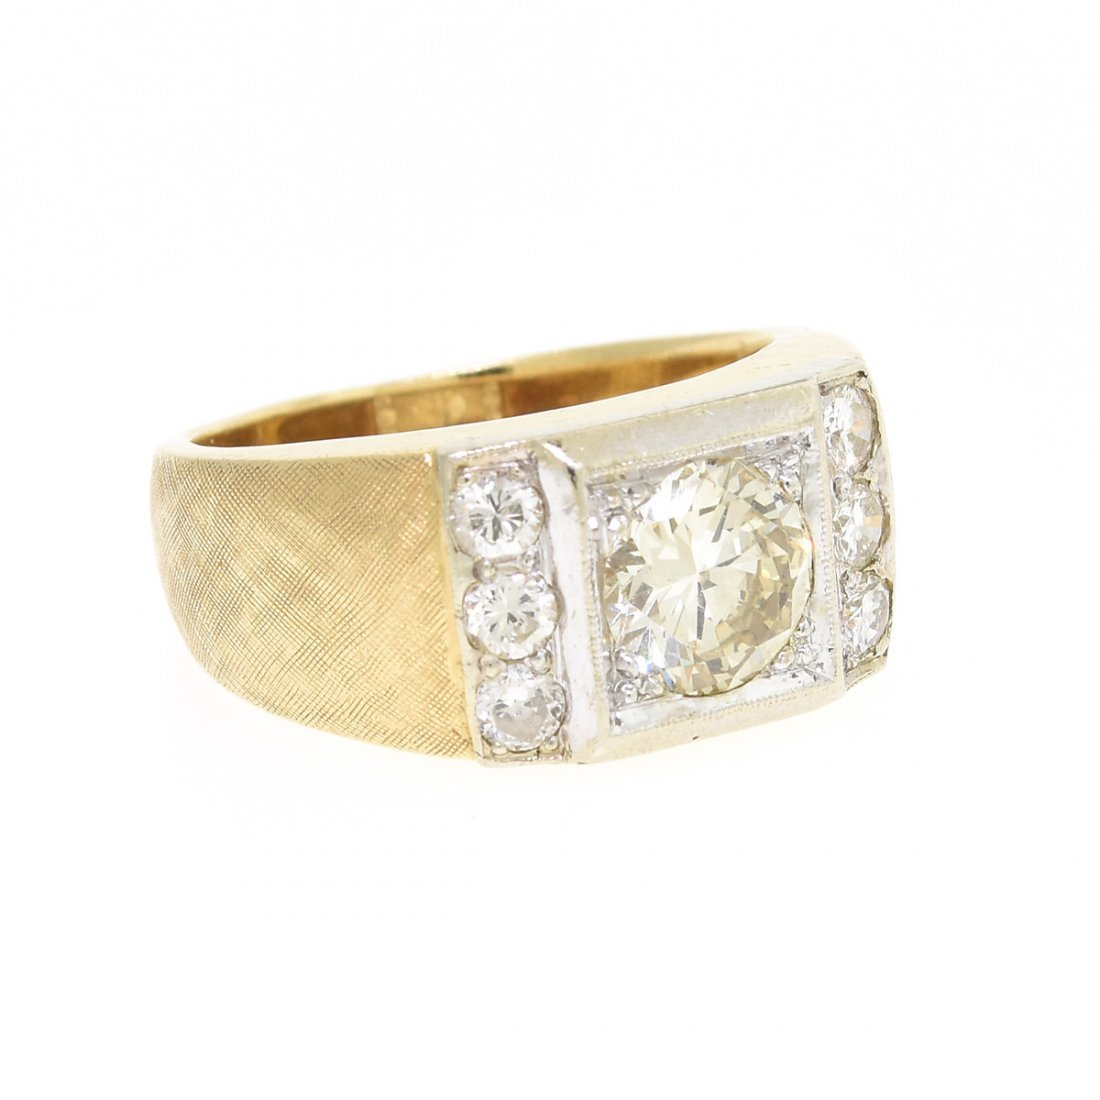 A 14K YELLOW GOLD AND DIAMOND GENT'S RING, - 2